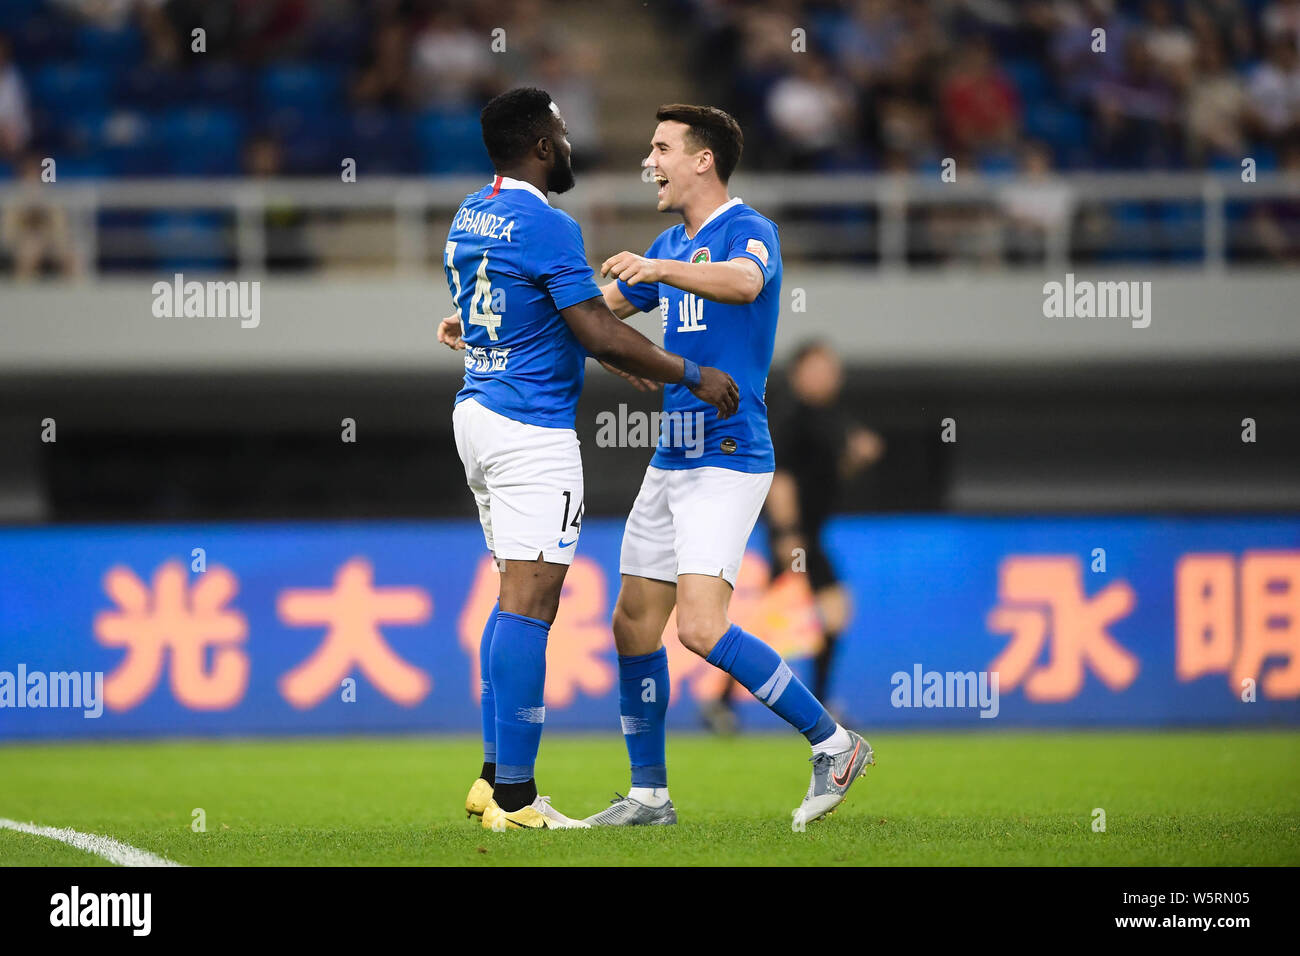 Cameroonian football player Franck Ohandza, left, of Henan Jianye celebrates with English-born Taiwanese football player Tim Chow after scoring agains Stock Photo